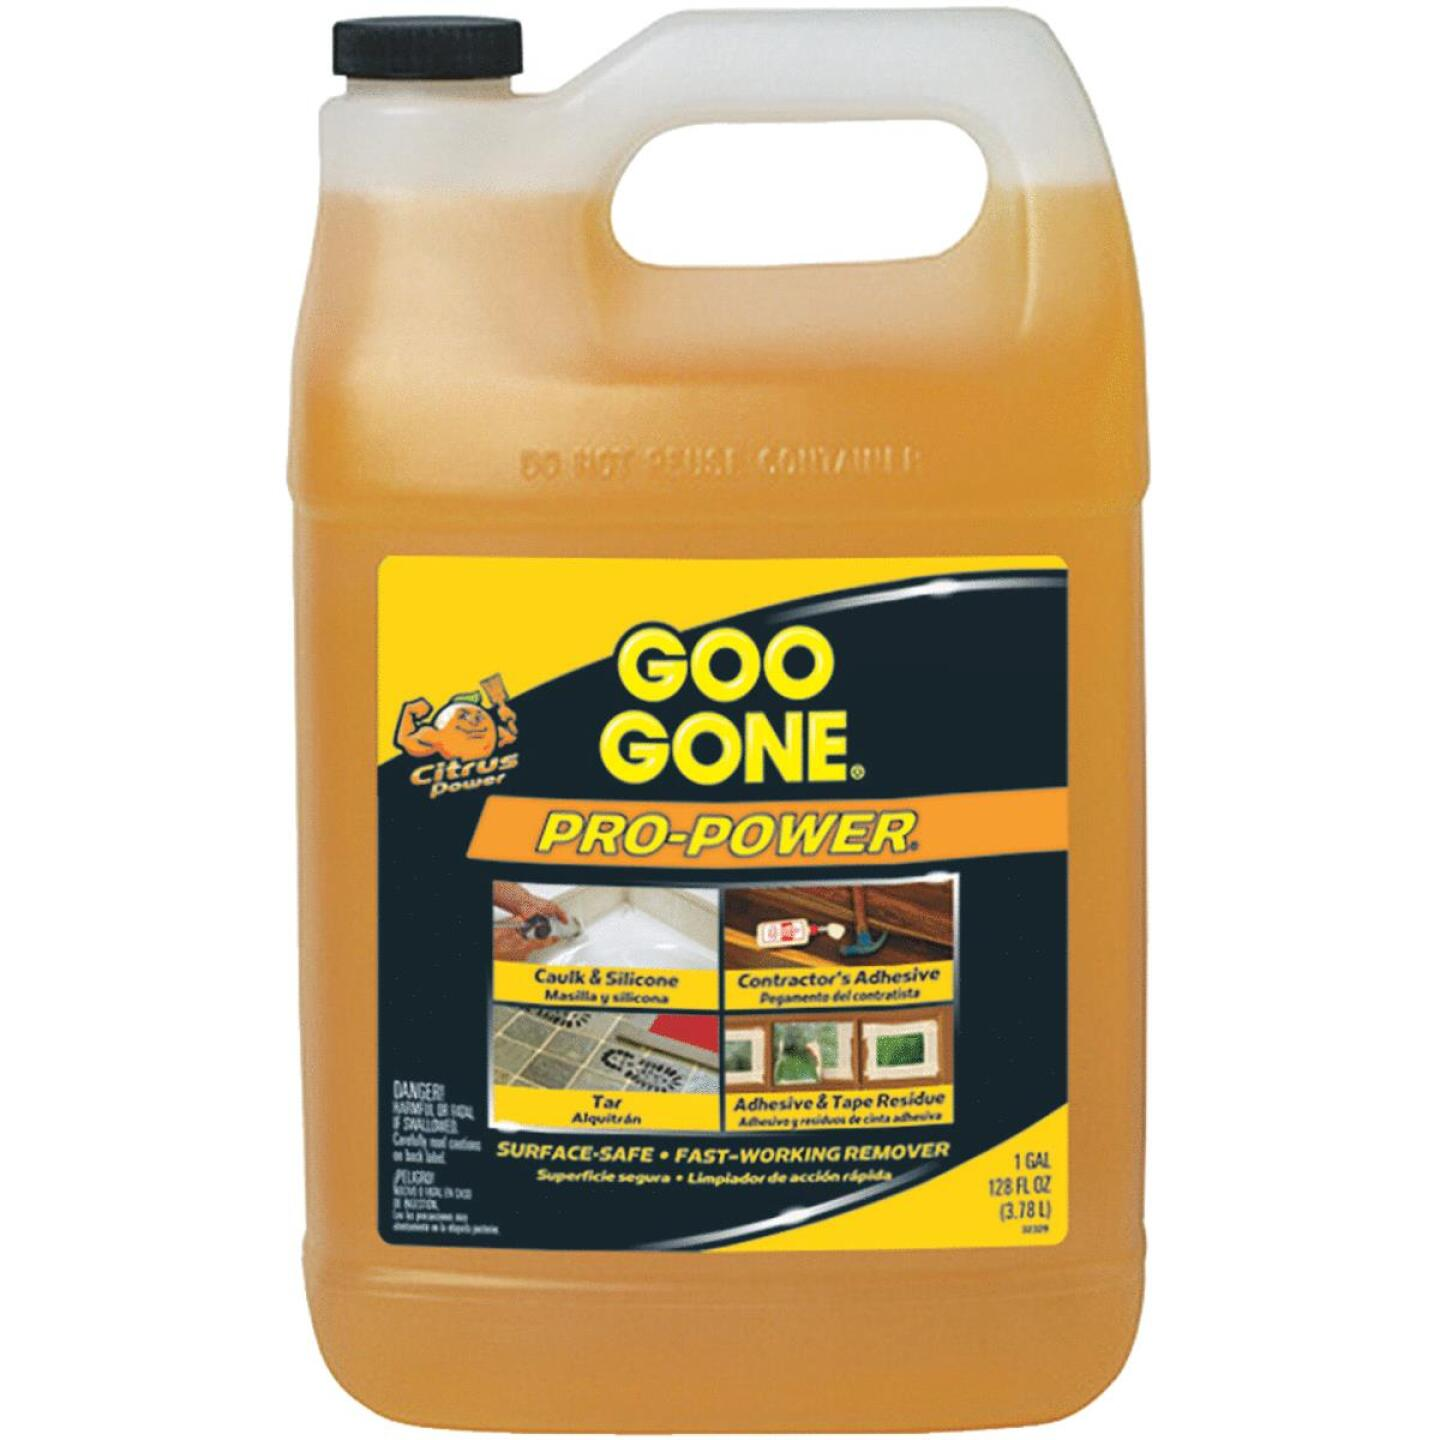 Goo Gone 1 Gal. Pro-Power Adhesive Remover Image 245